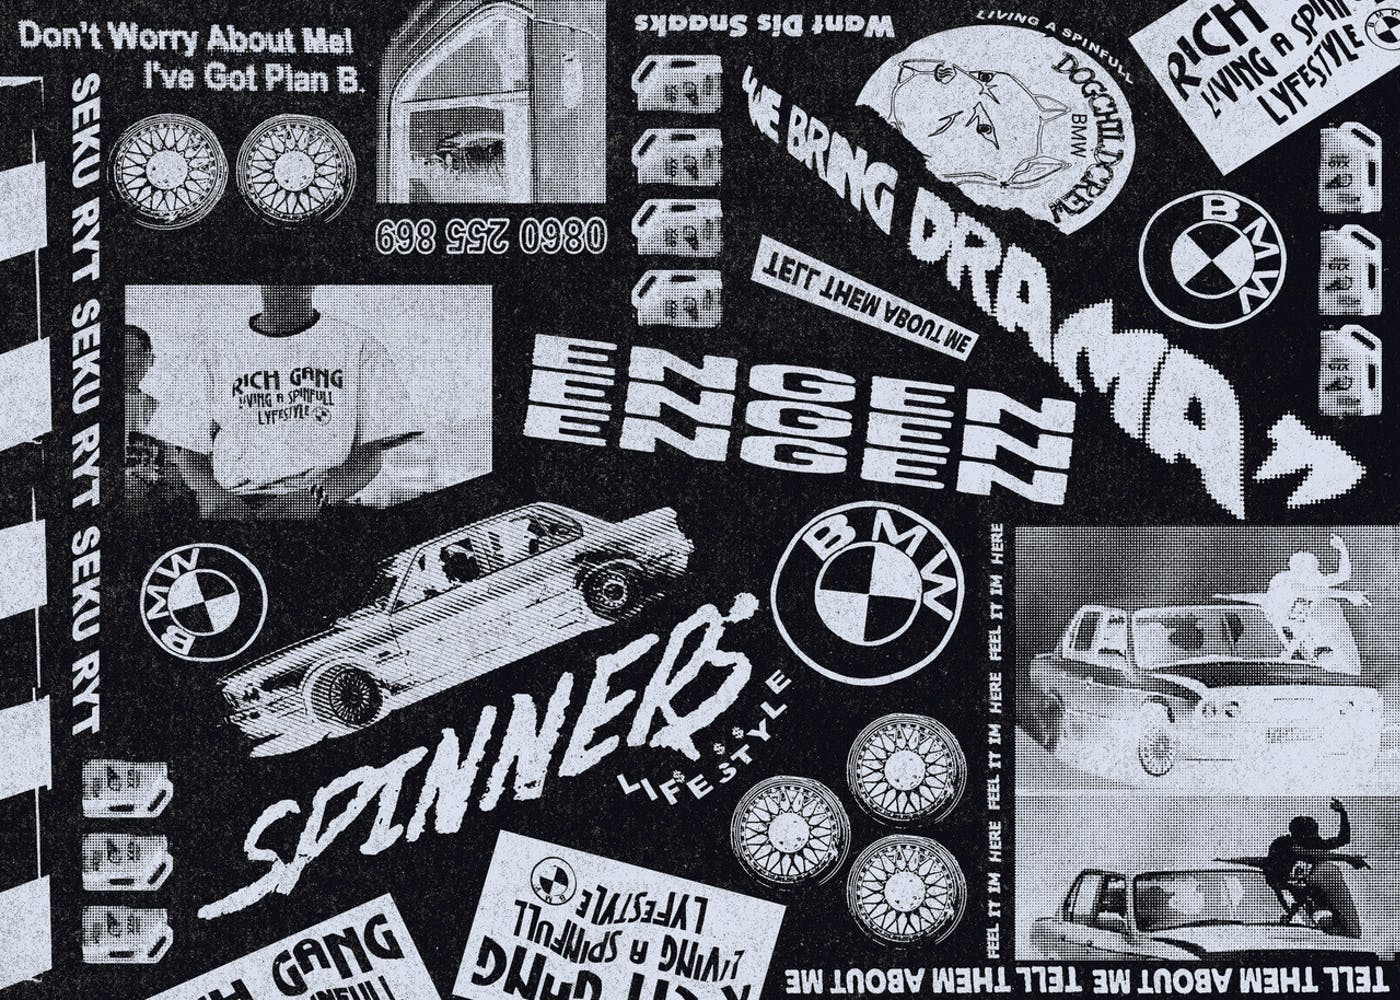 Typographic collage in black and white